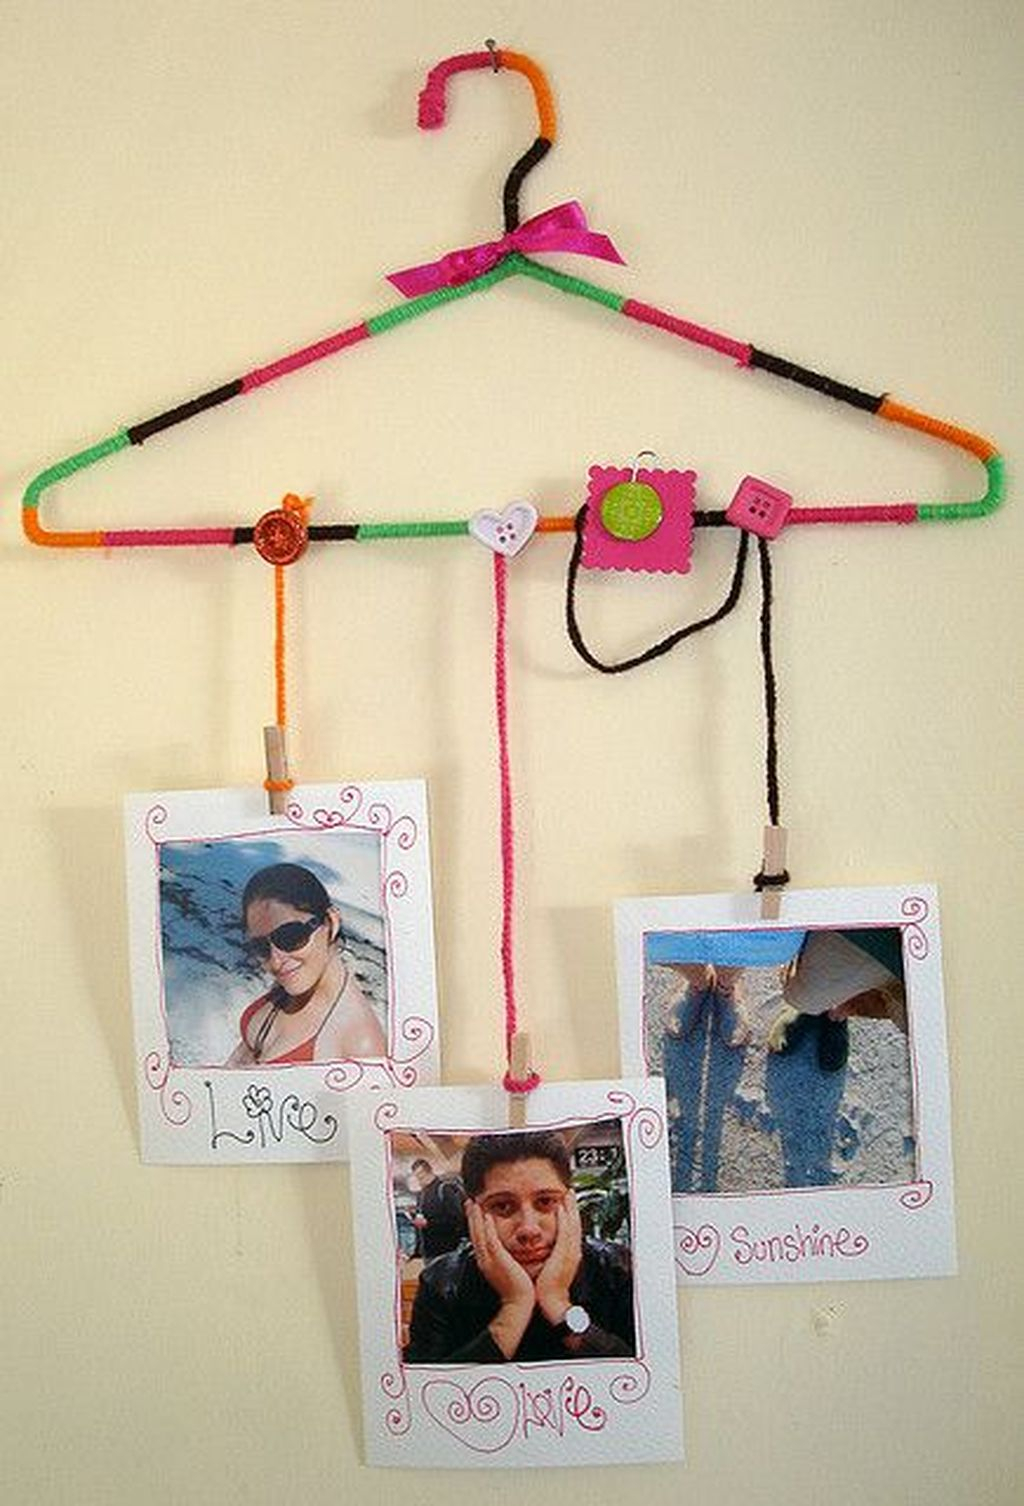 Delightful Teen Photo Crafts Design Ideas To Try Asap 34